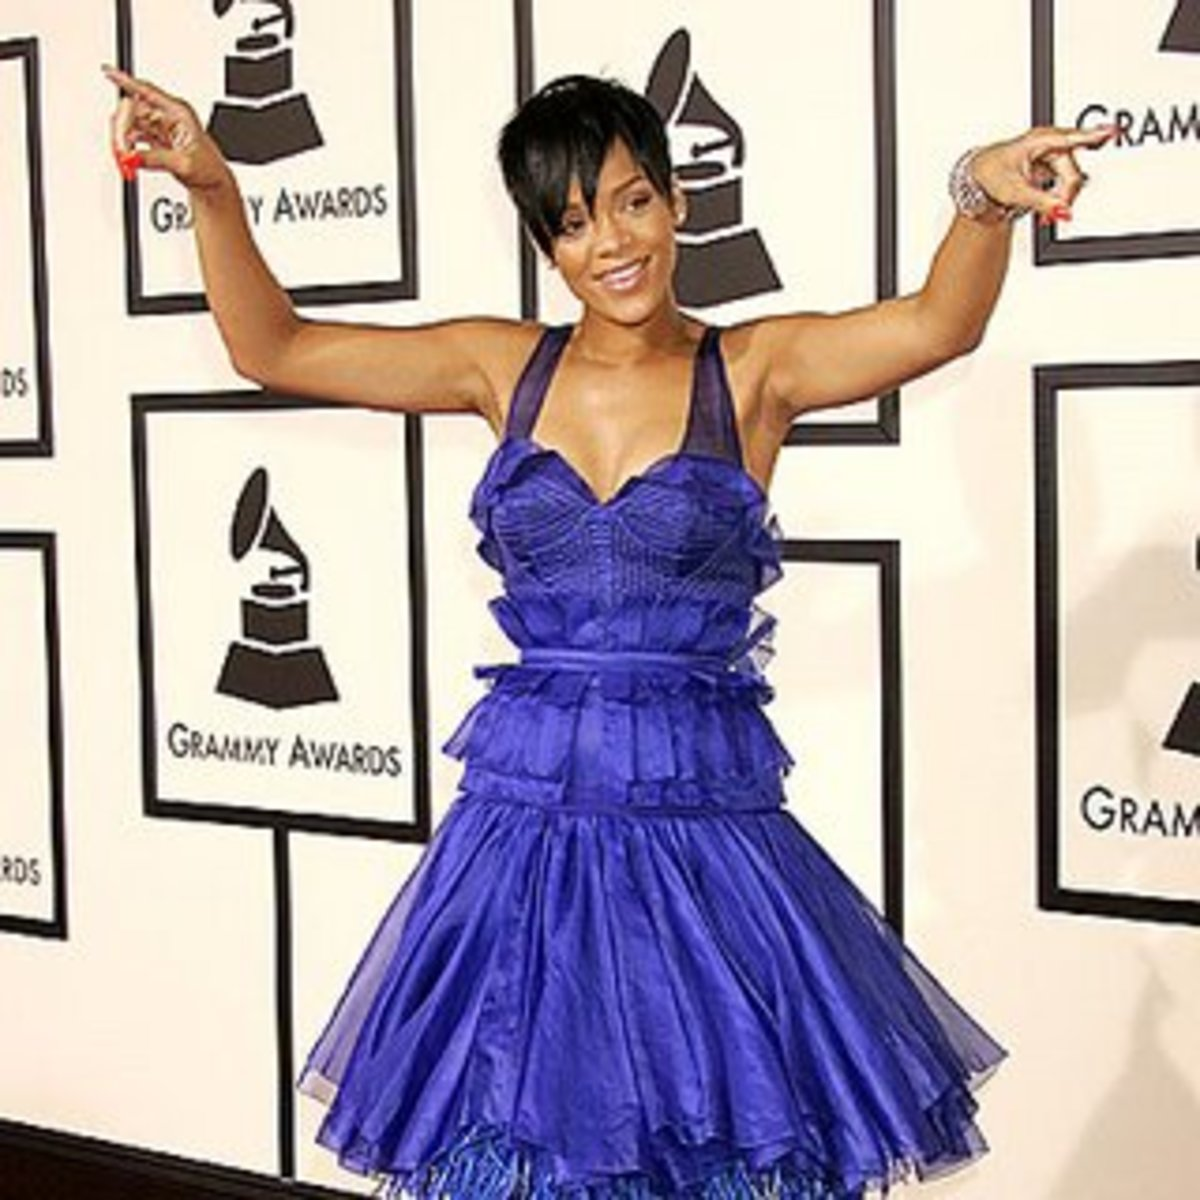 Singer Rihanna at the 2008 Grammy Awards in Zac Posen Cone Bra creation